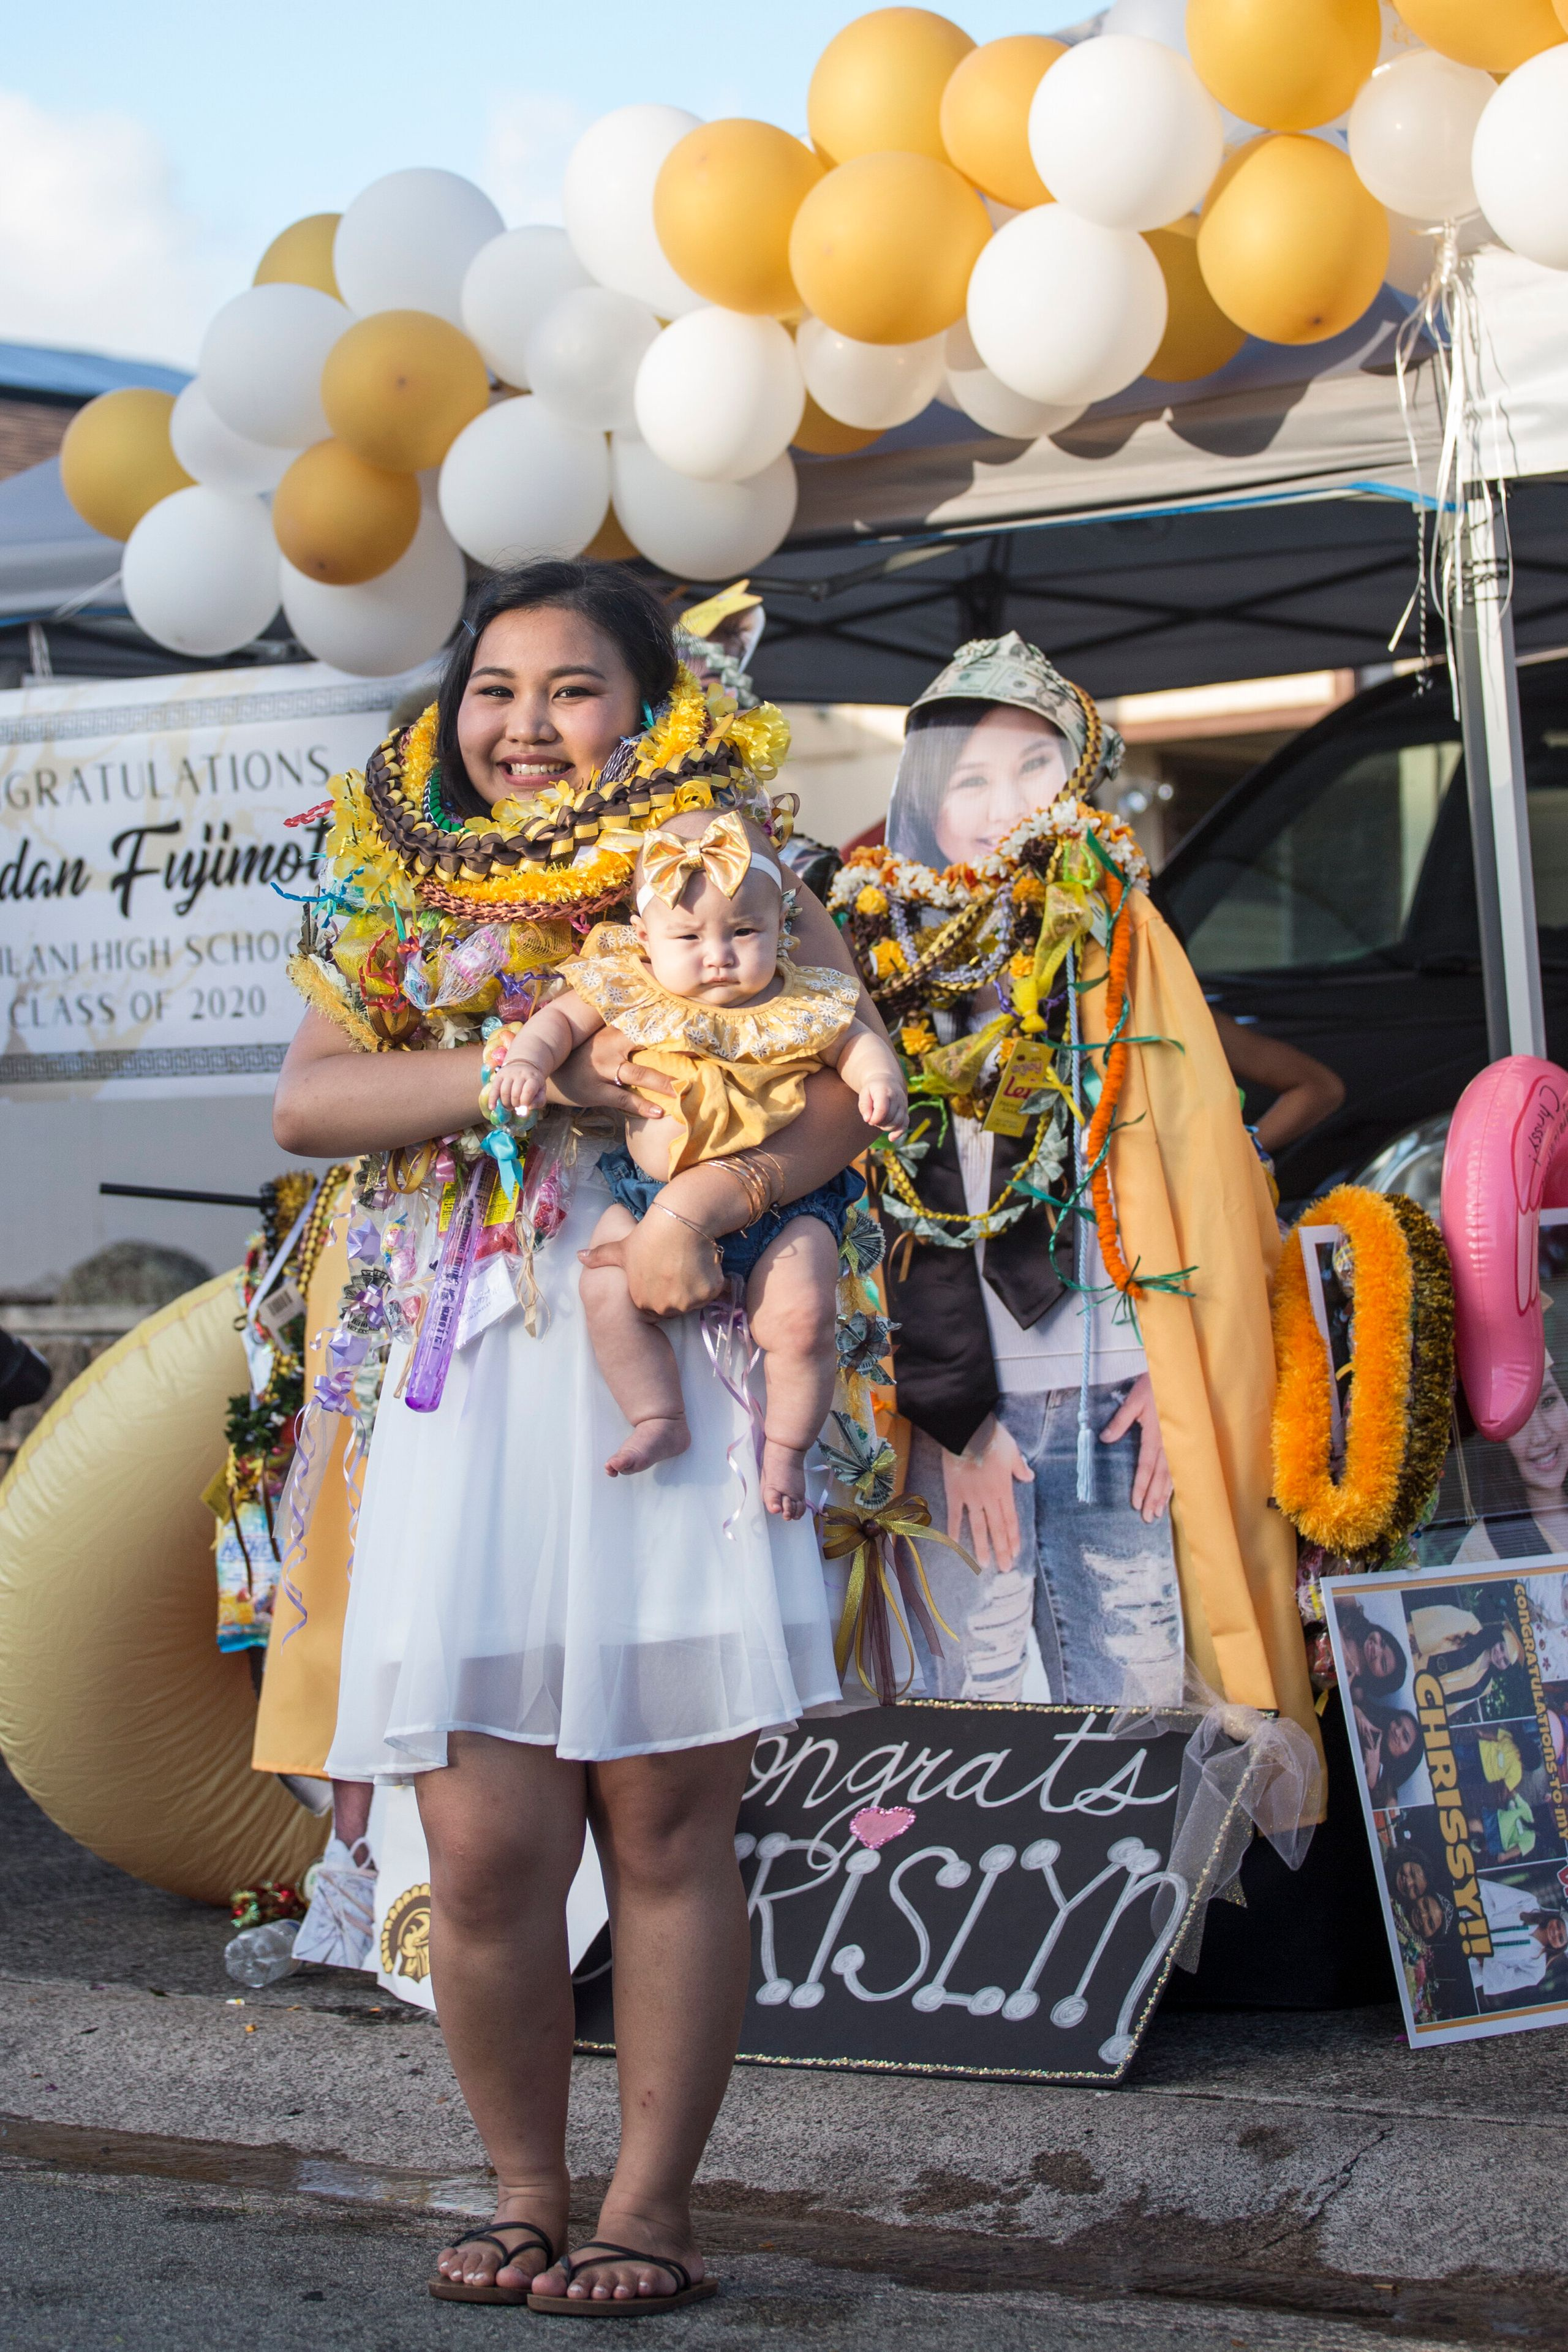 Chrislyn Antonio, a Mililani High School graduate, with her daughter, Embrie-Rose Lanias, in Mililani, Hawaii. Antonio h